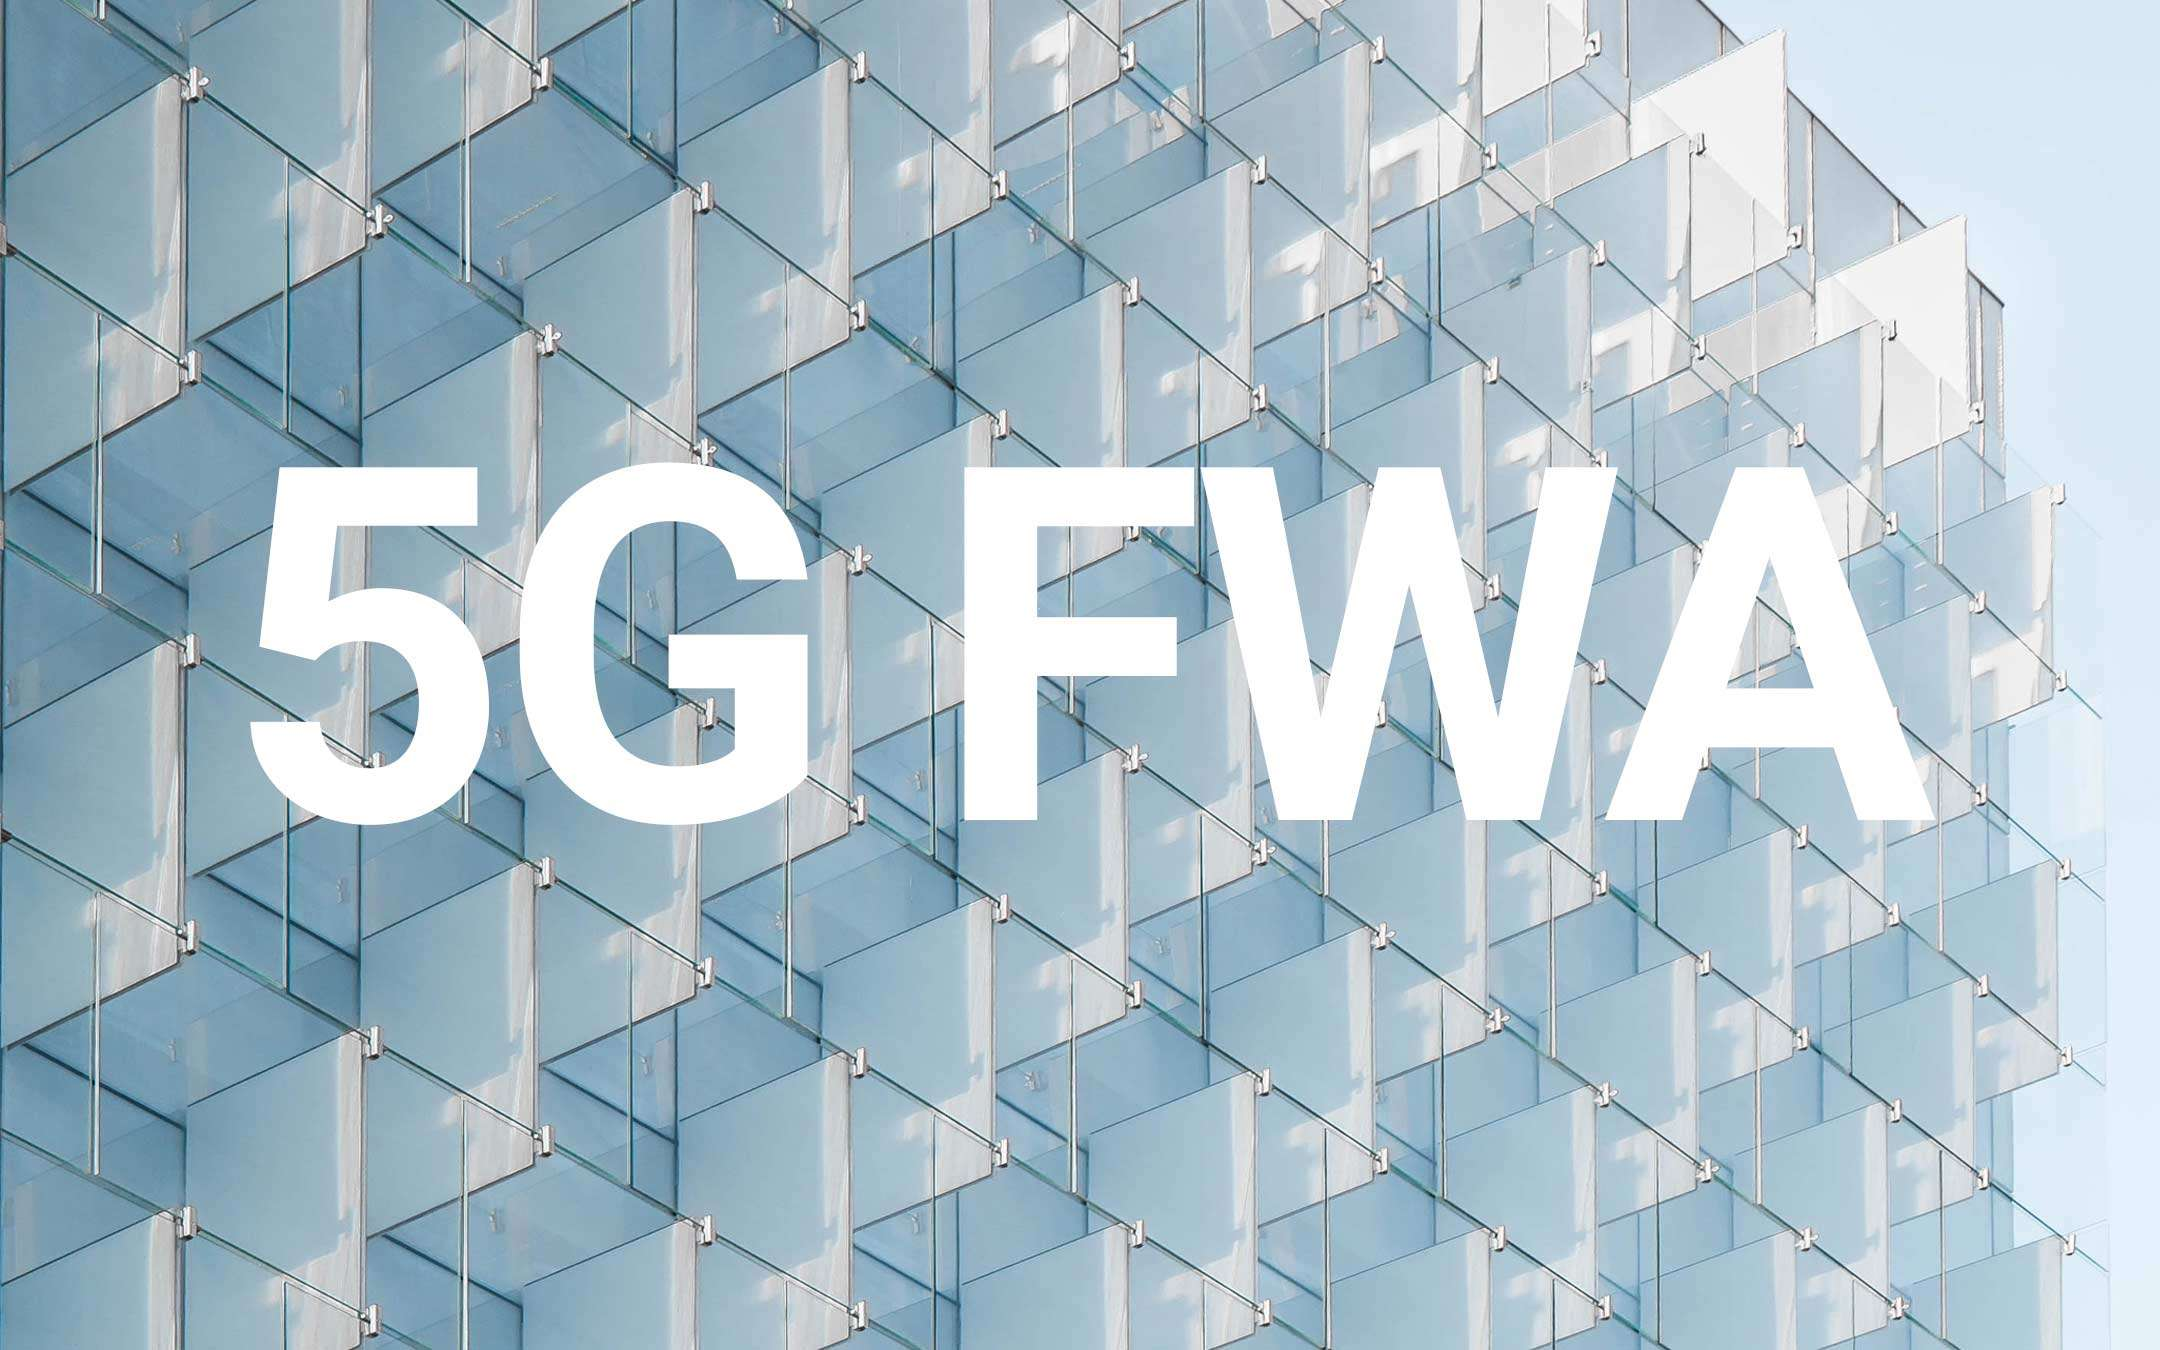 Record 5G with TIM, Ericsson and Qualcomm